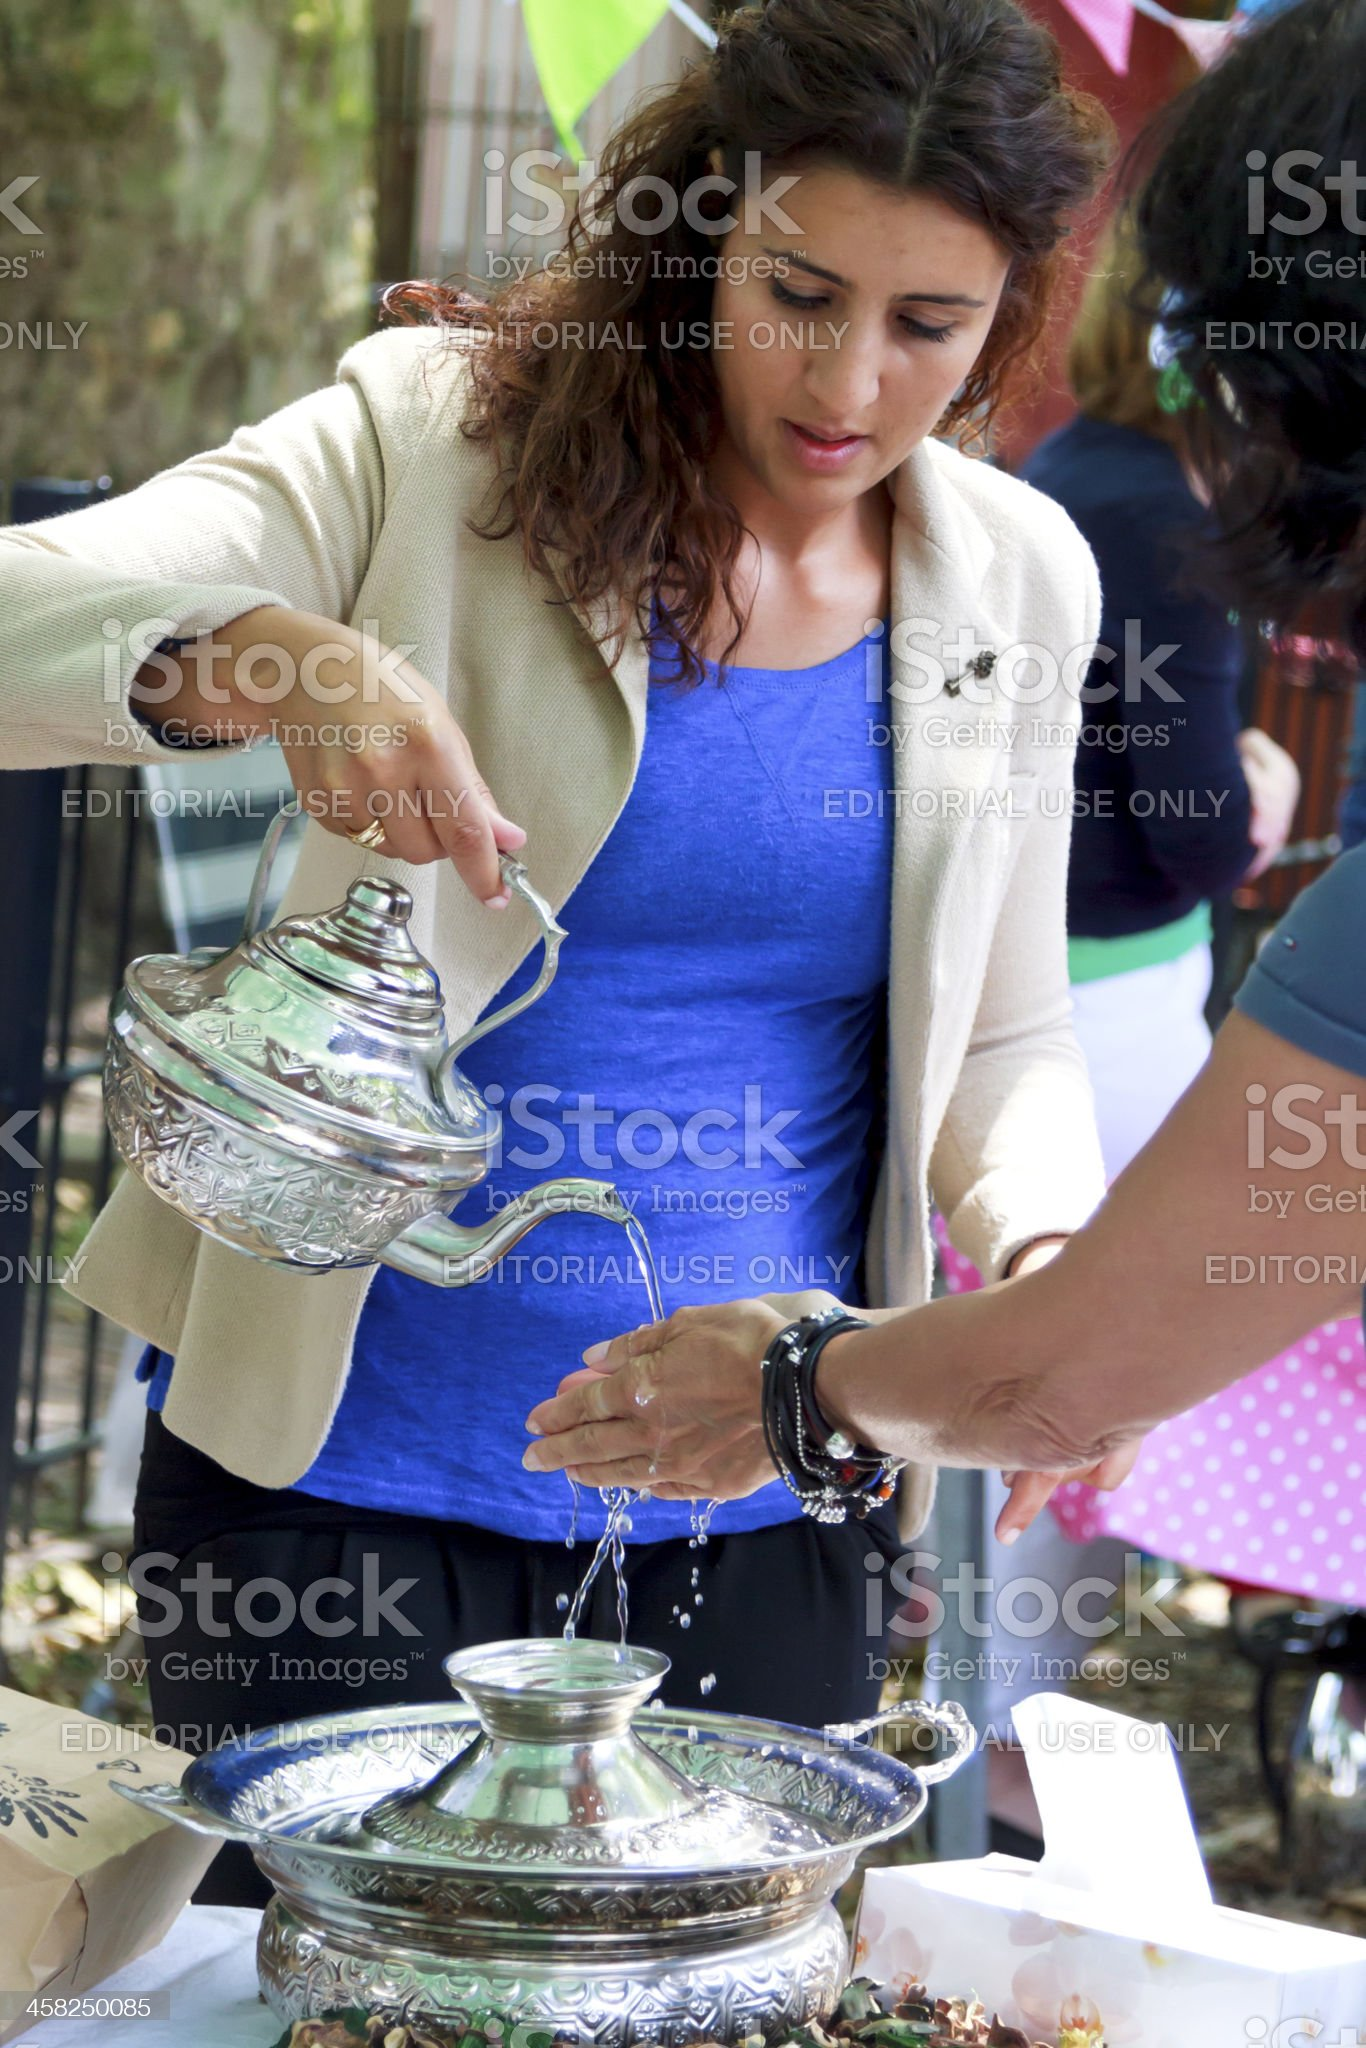 Unidentified customer testing a product royalty-free stock photo